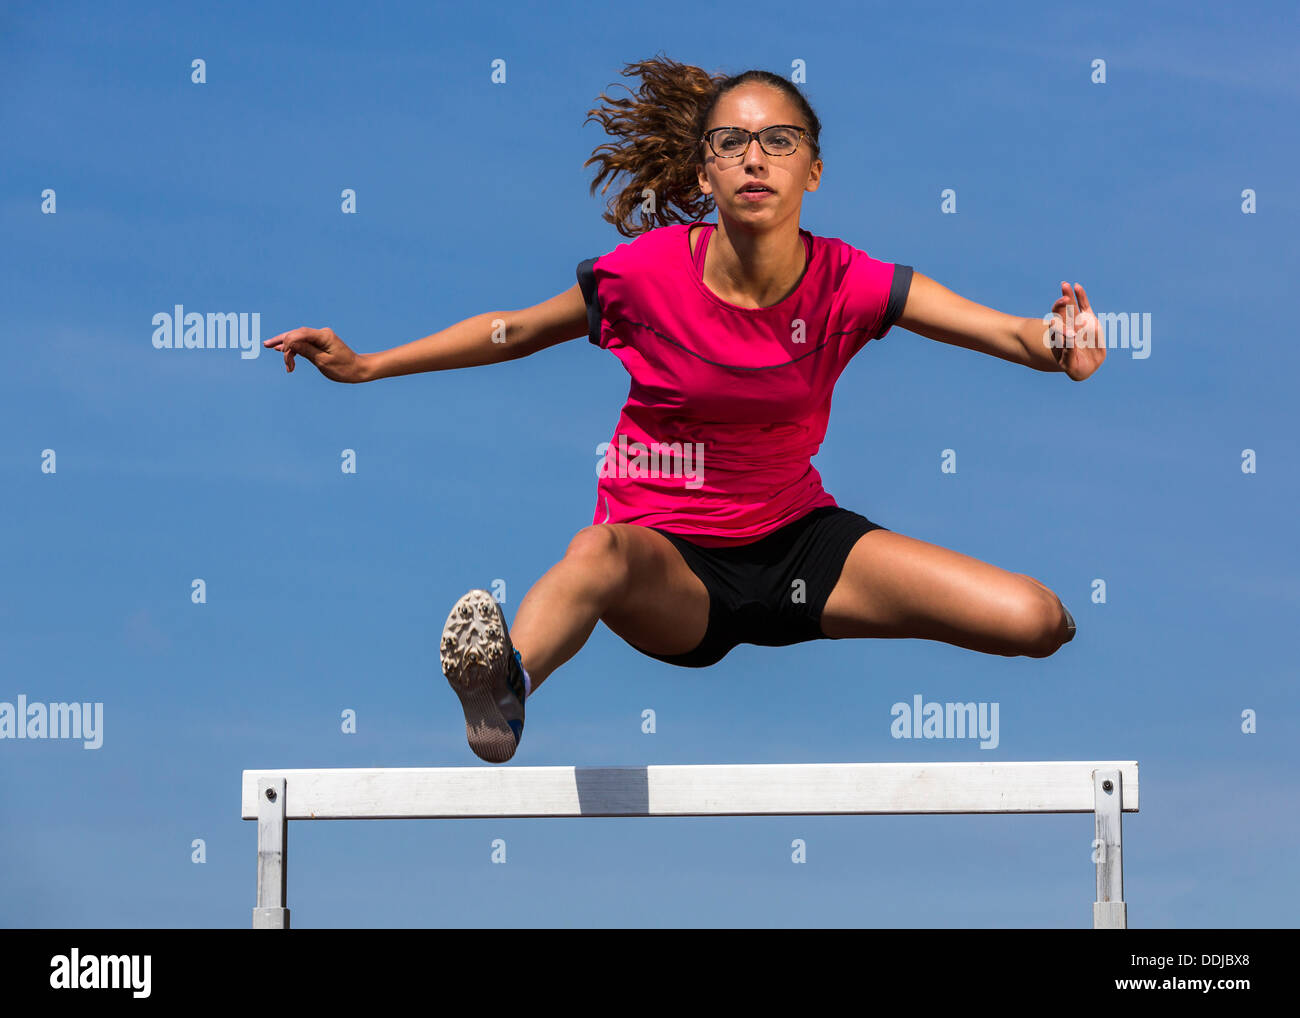 germany young woman athlete jumping hurdles on track stockfoto lizenzfreies bild 60026128 alamy. Black Bedroom Furniture Sets. Home Design Ideas